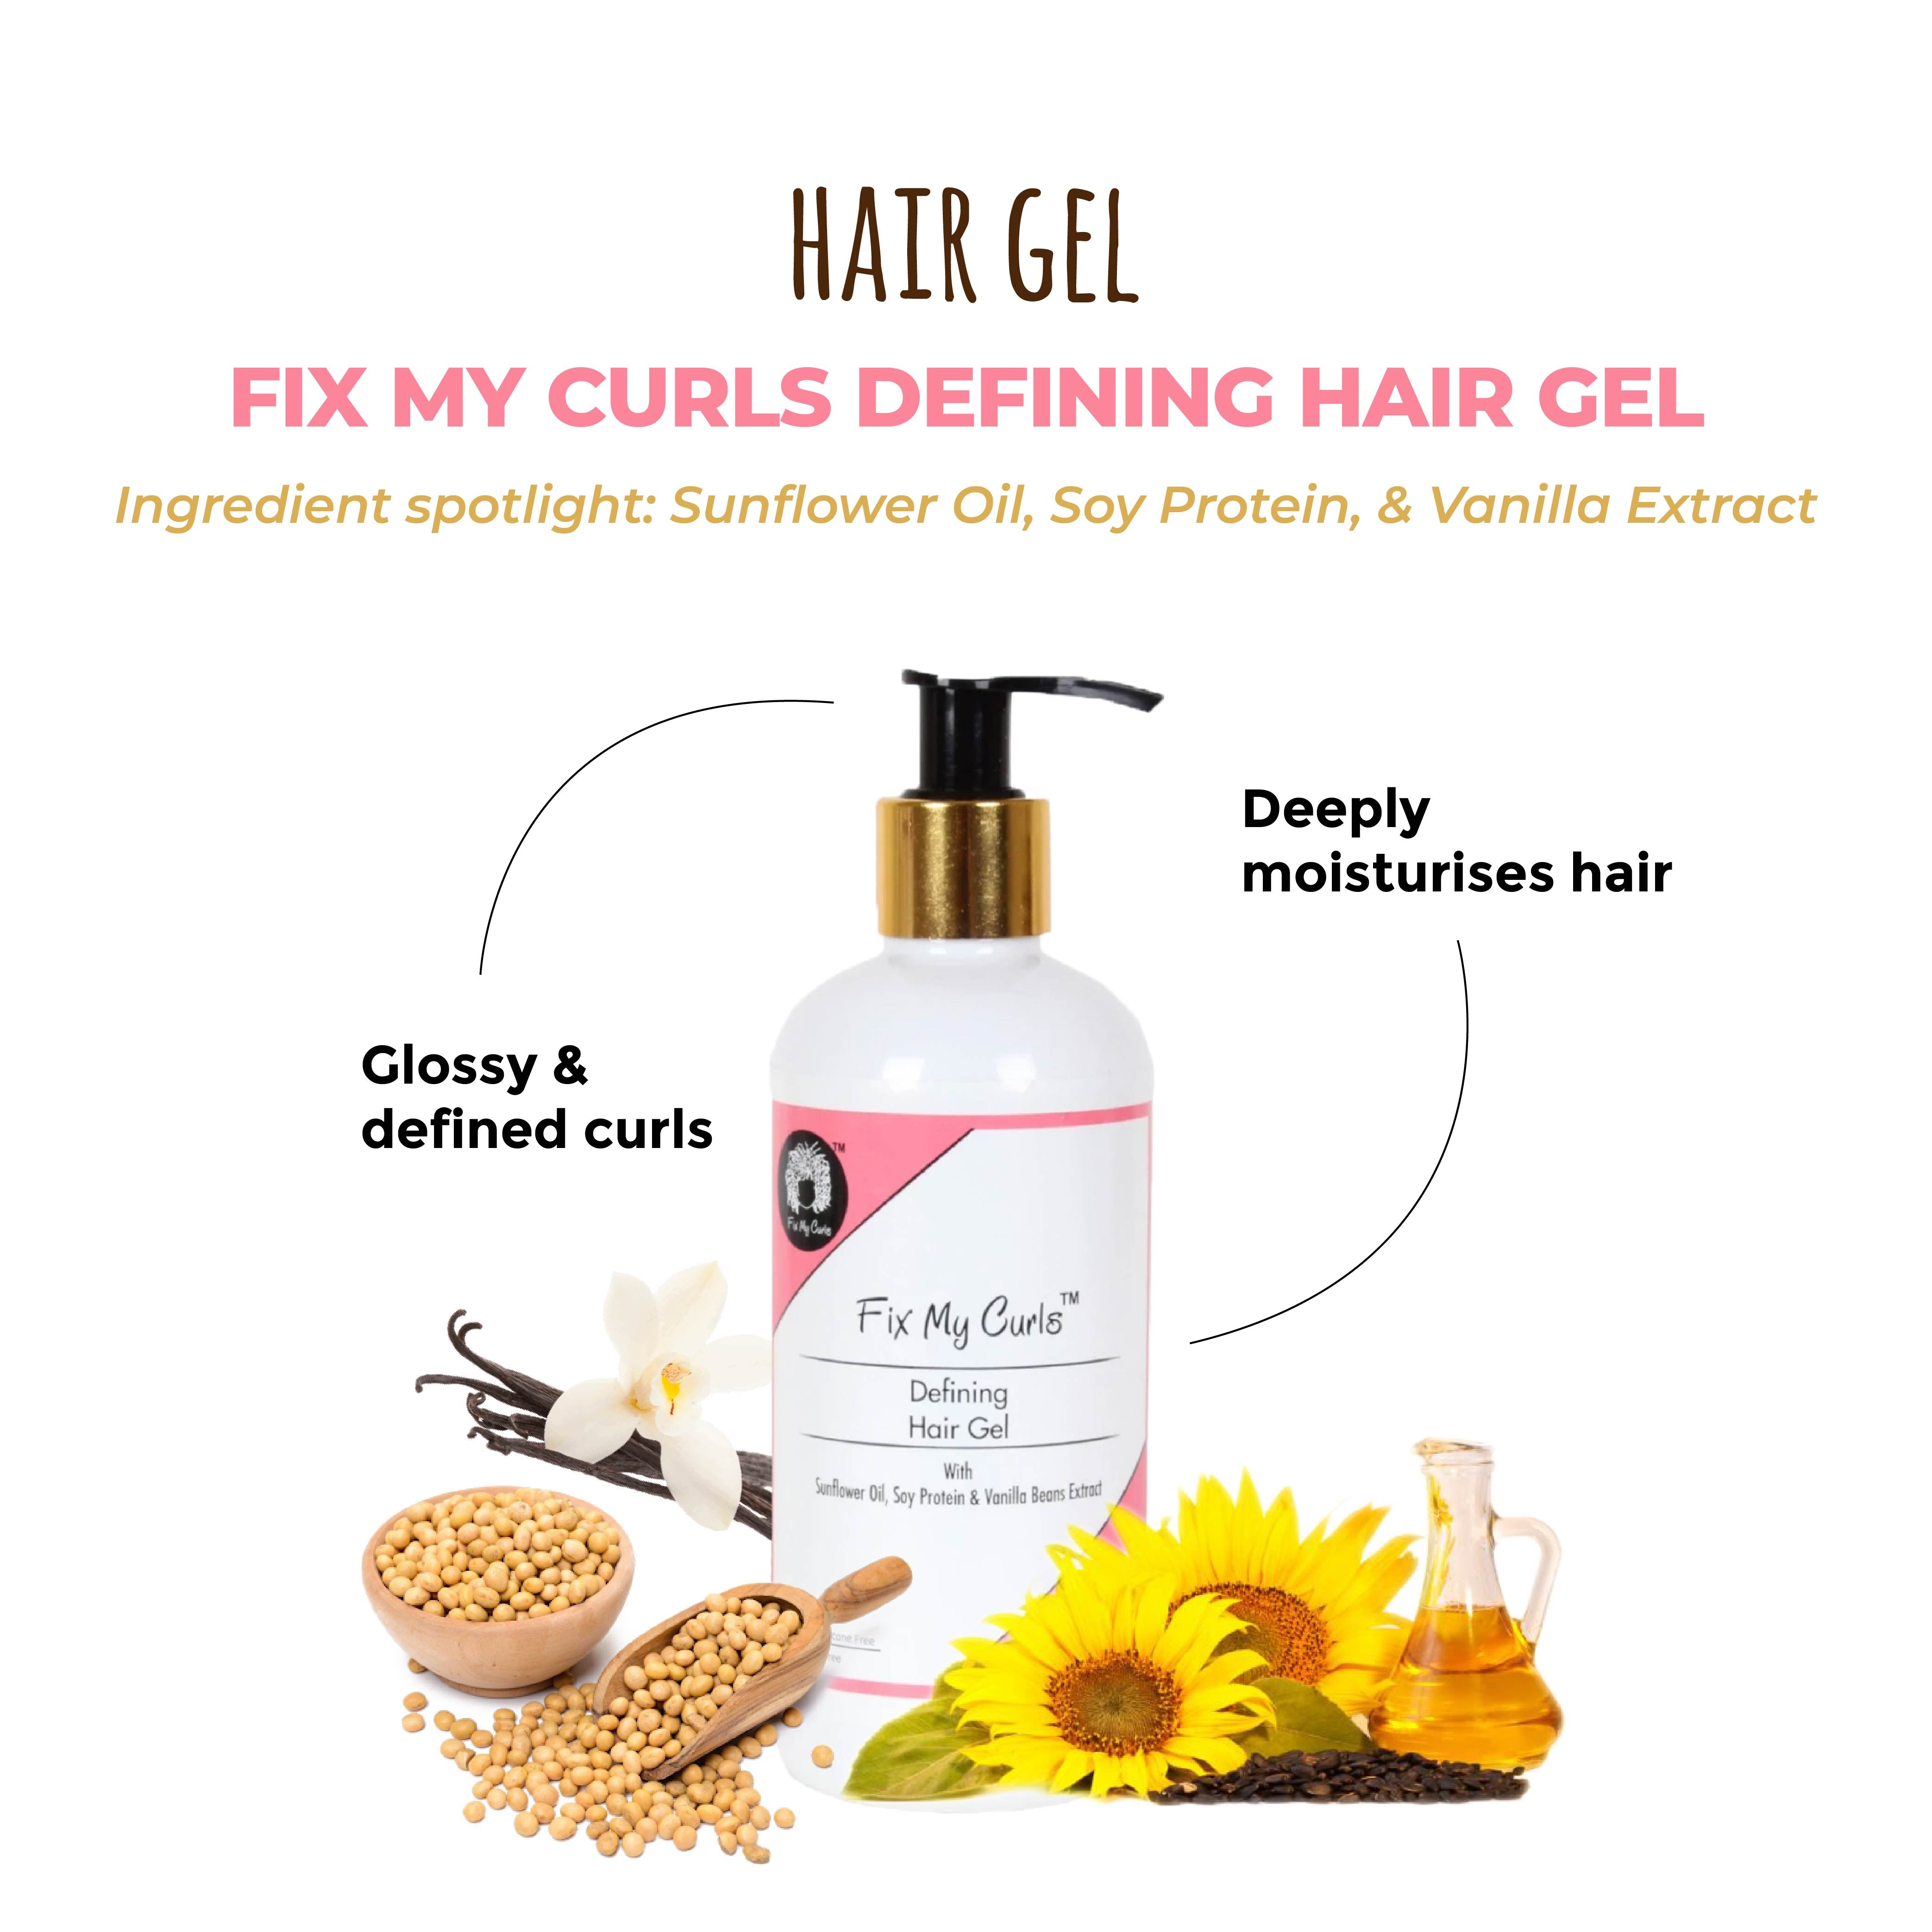 This is a link to the Fix My Curls Defining Gel on www.sublimelife.in